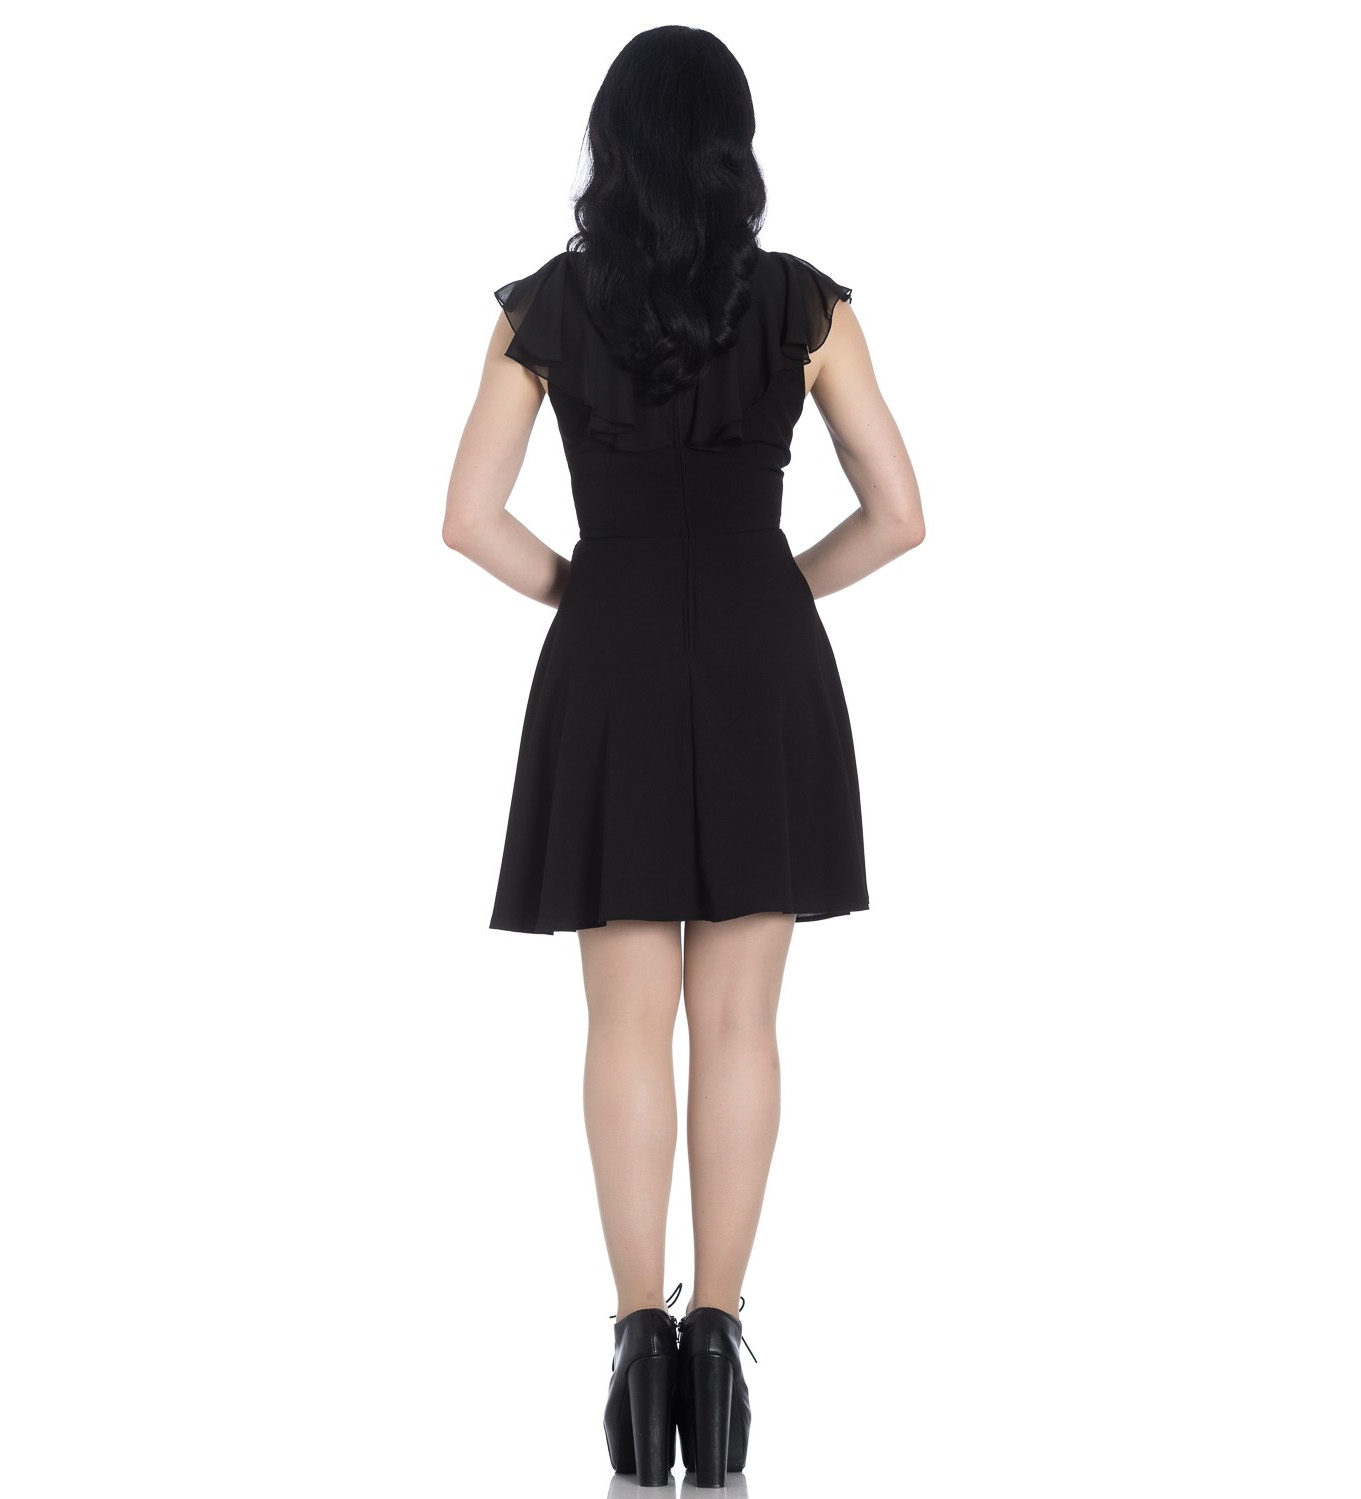 Hell-Bunny-Floaty-Lace-Up-Goth-Witch-Punk-Mini-Dress-ONYX-Black-All-Sizes thumbnail 7